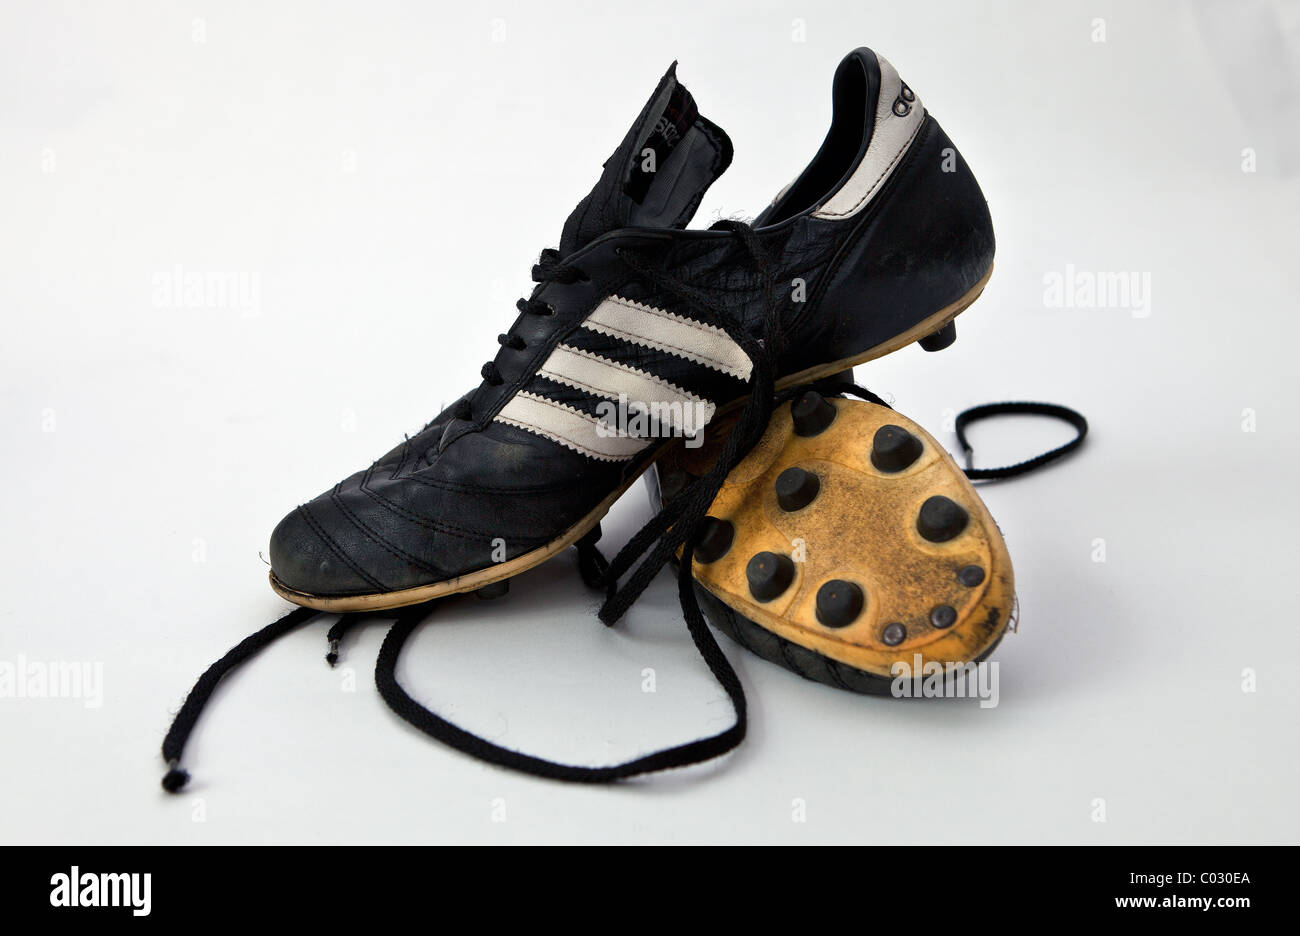 clearance prices classic new high quality Pair of old football boots Stock Photo: 34486994 - Alamy